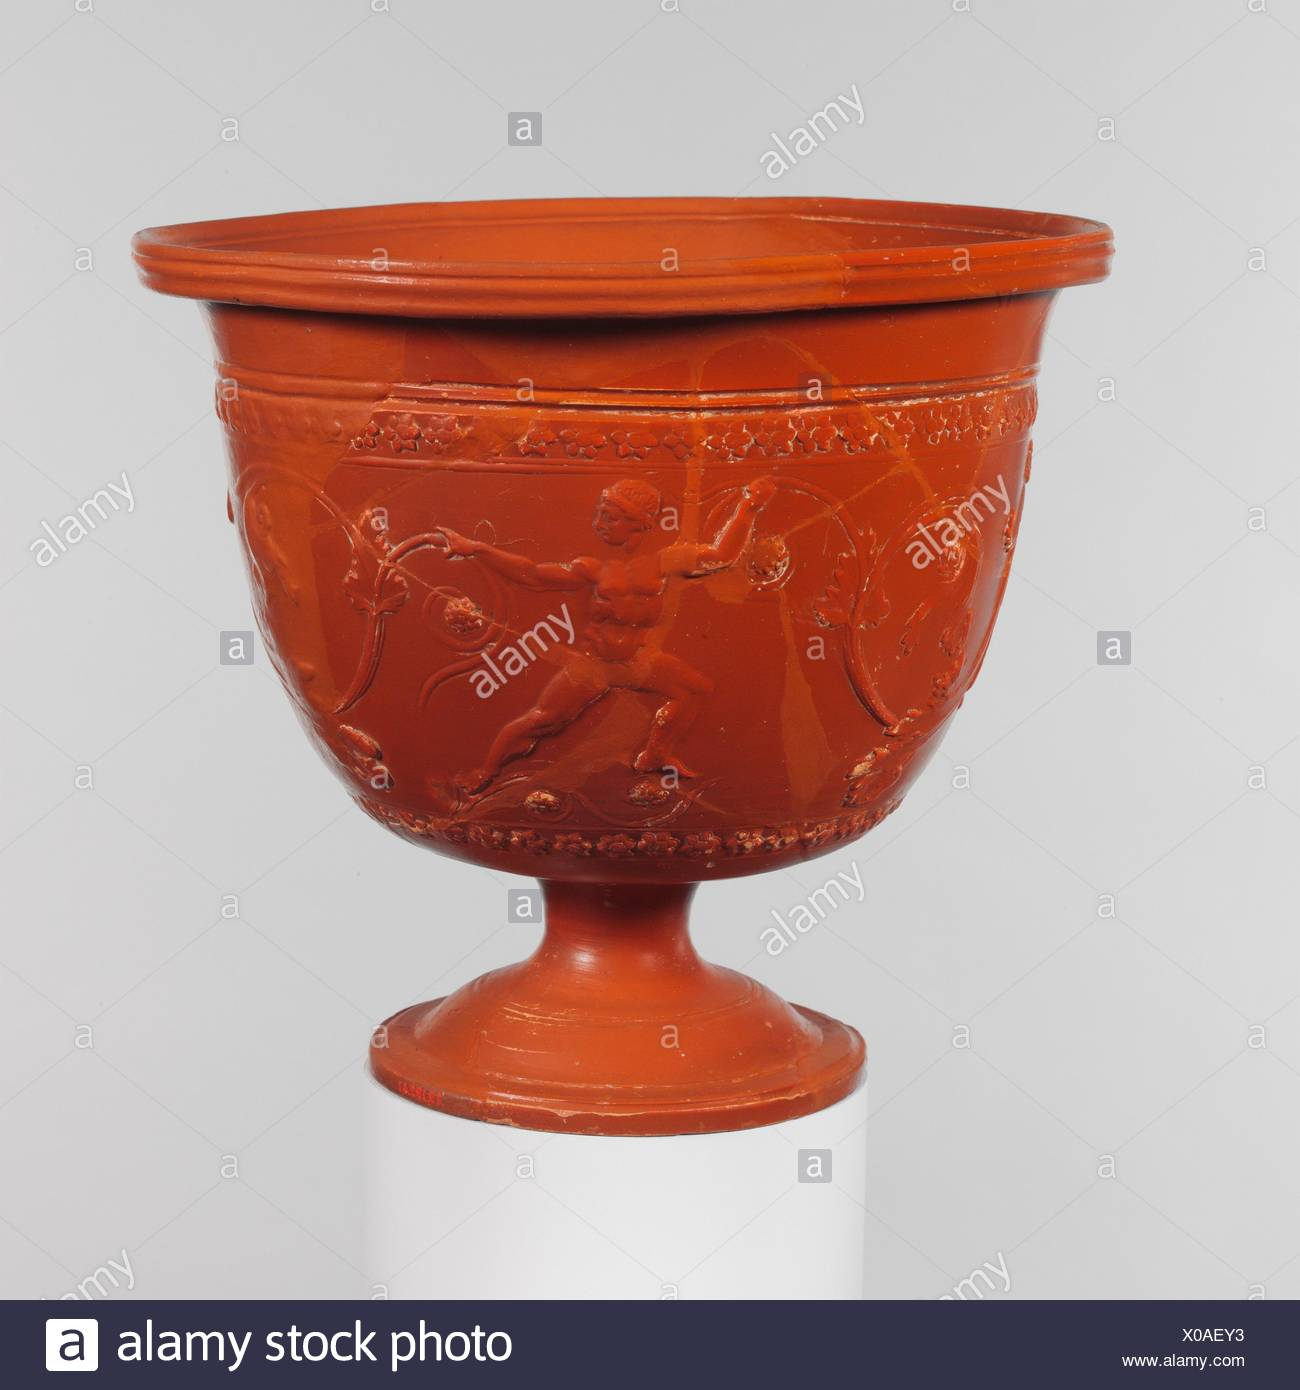 Terracotta bowl. Period: Early Imperial, Augustan; Date: ca. 20 B.C.-A.D. 10; Culture: Roman; Medium: Terracotta; Arretine ware; Dimensions: H. 7 in. Stock Photo